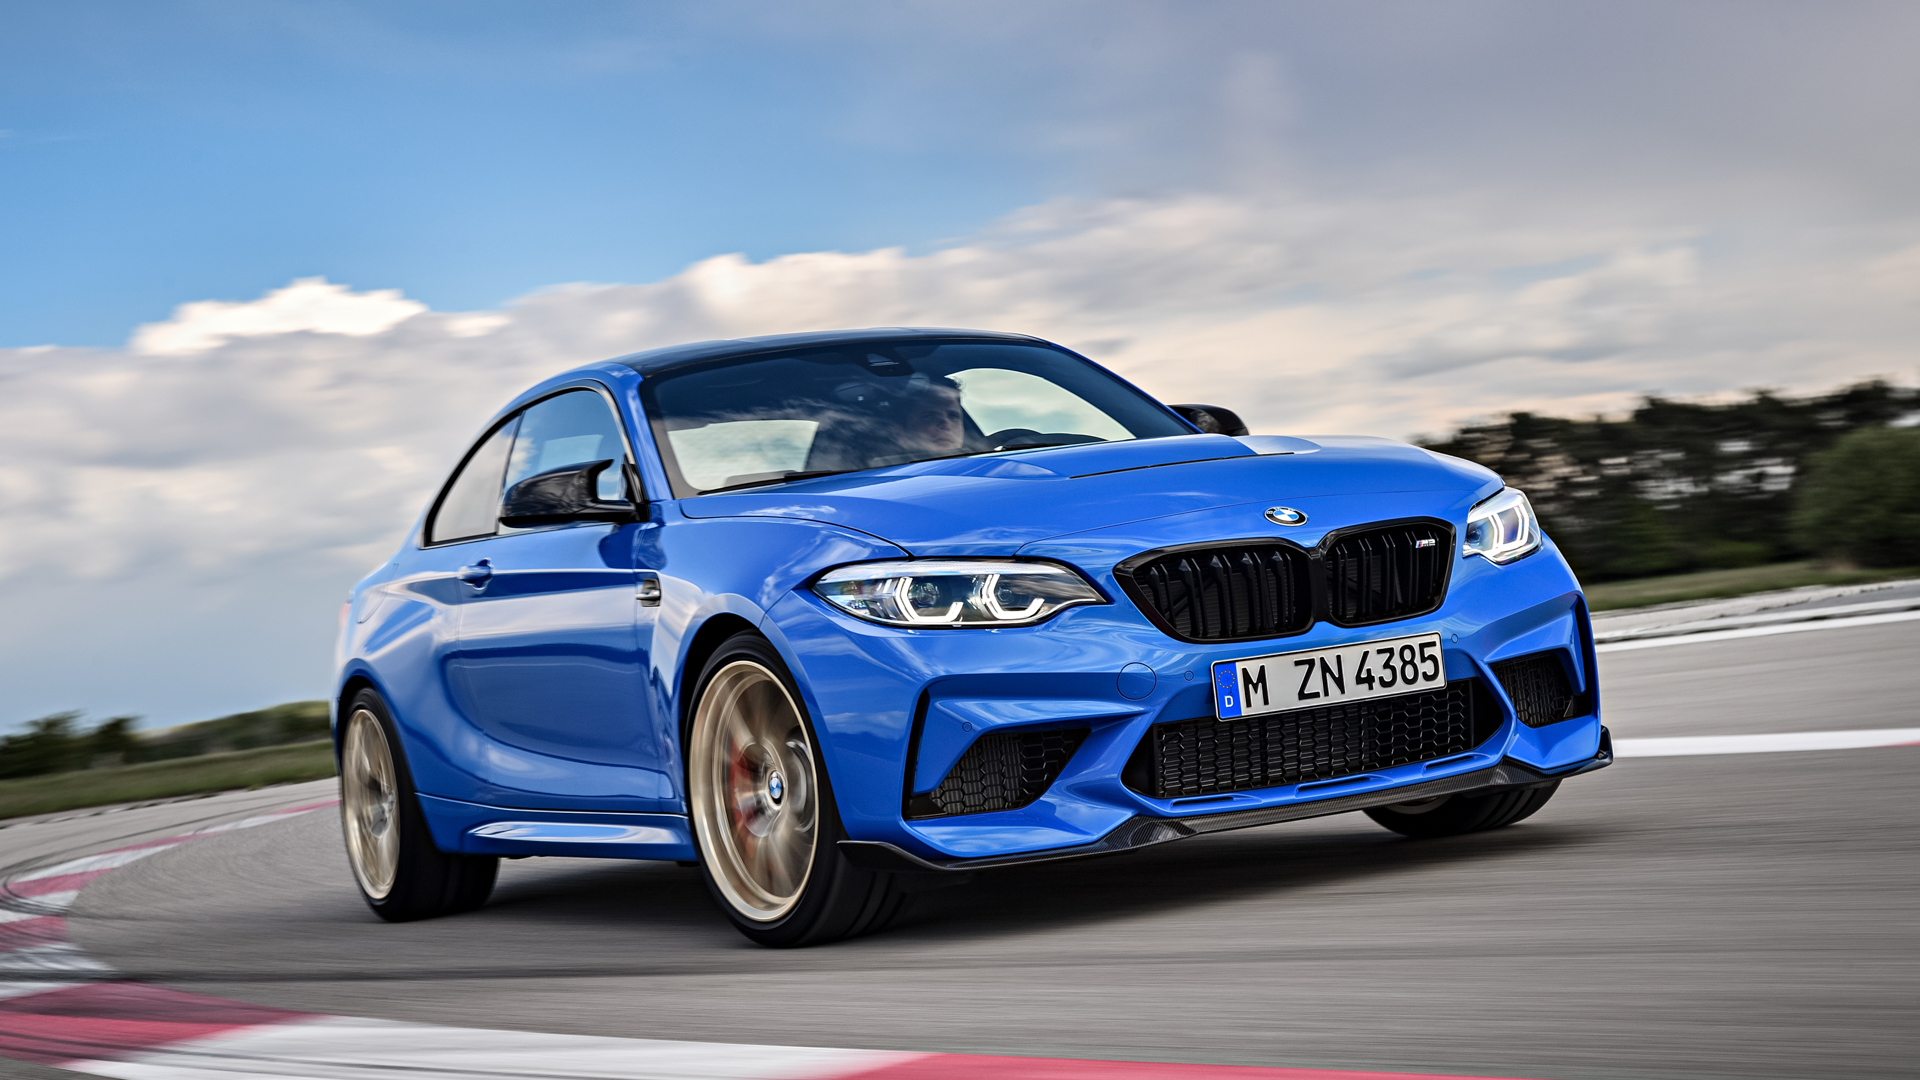 BMW M2 CS M2 Comp Comparisons 9 of 12